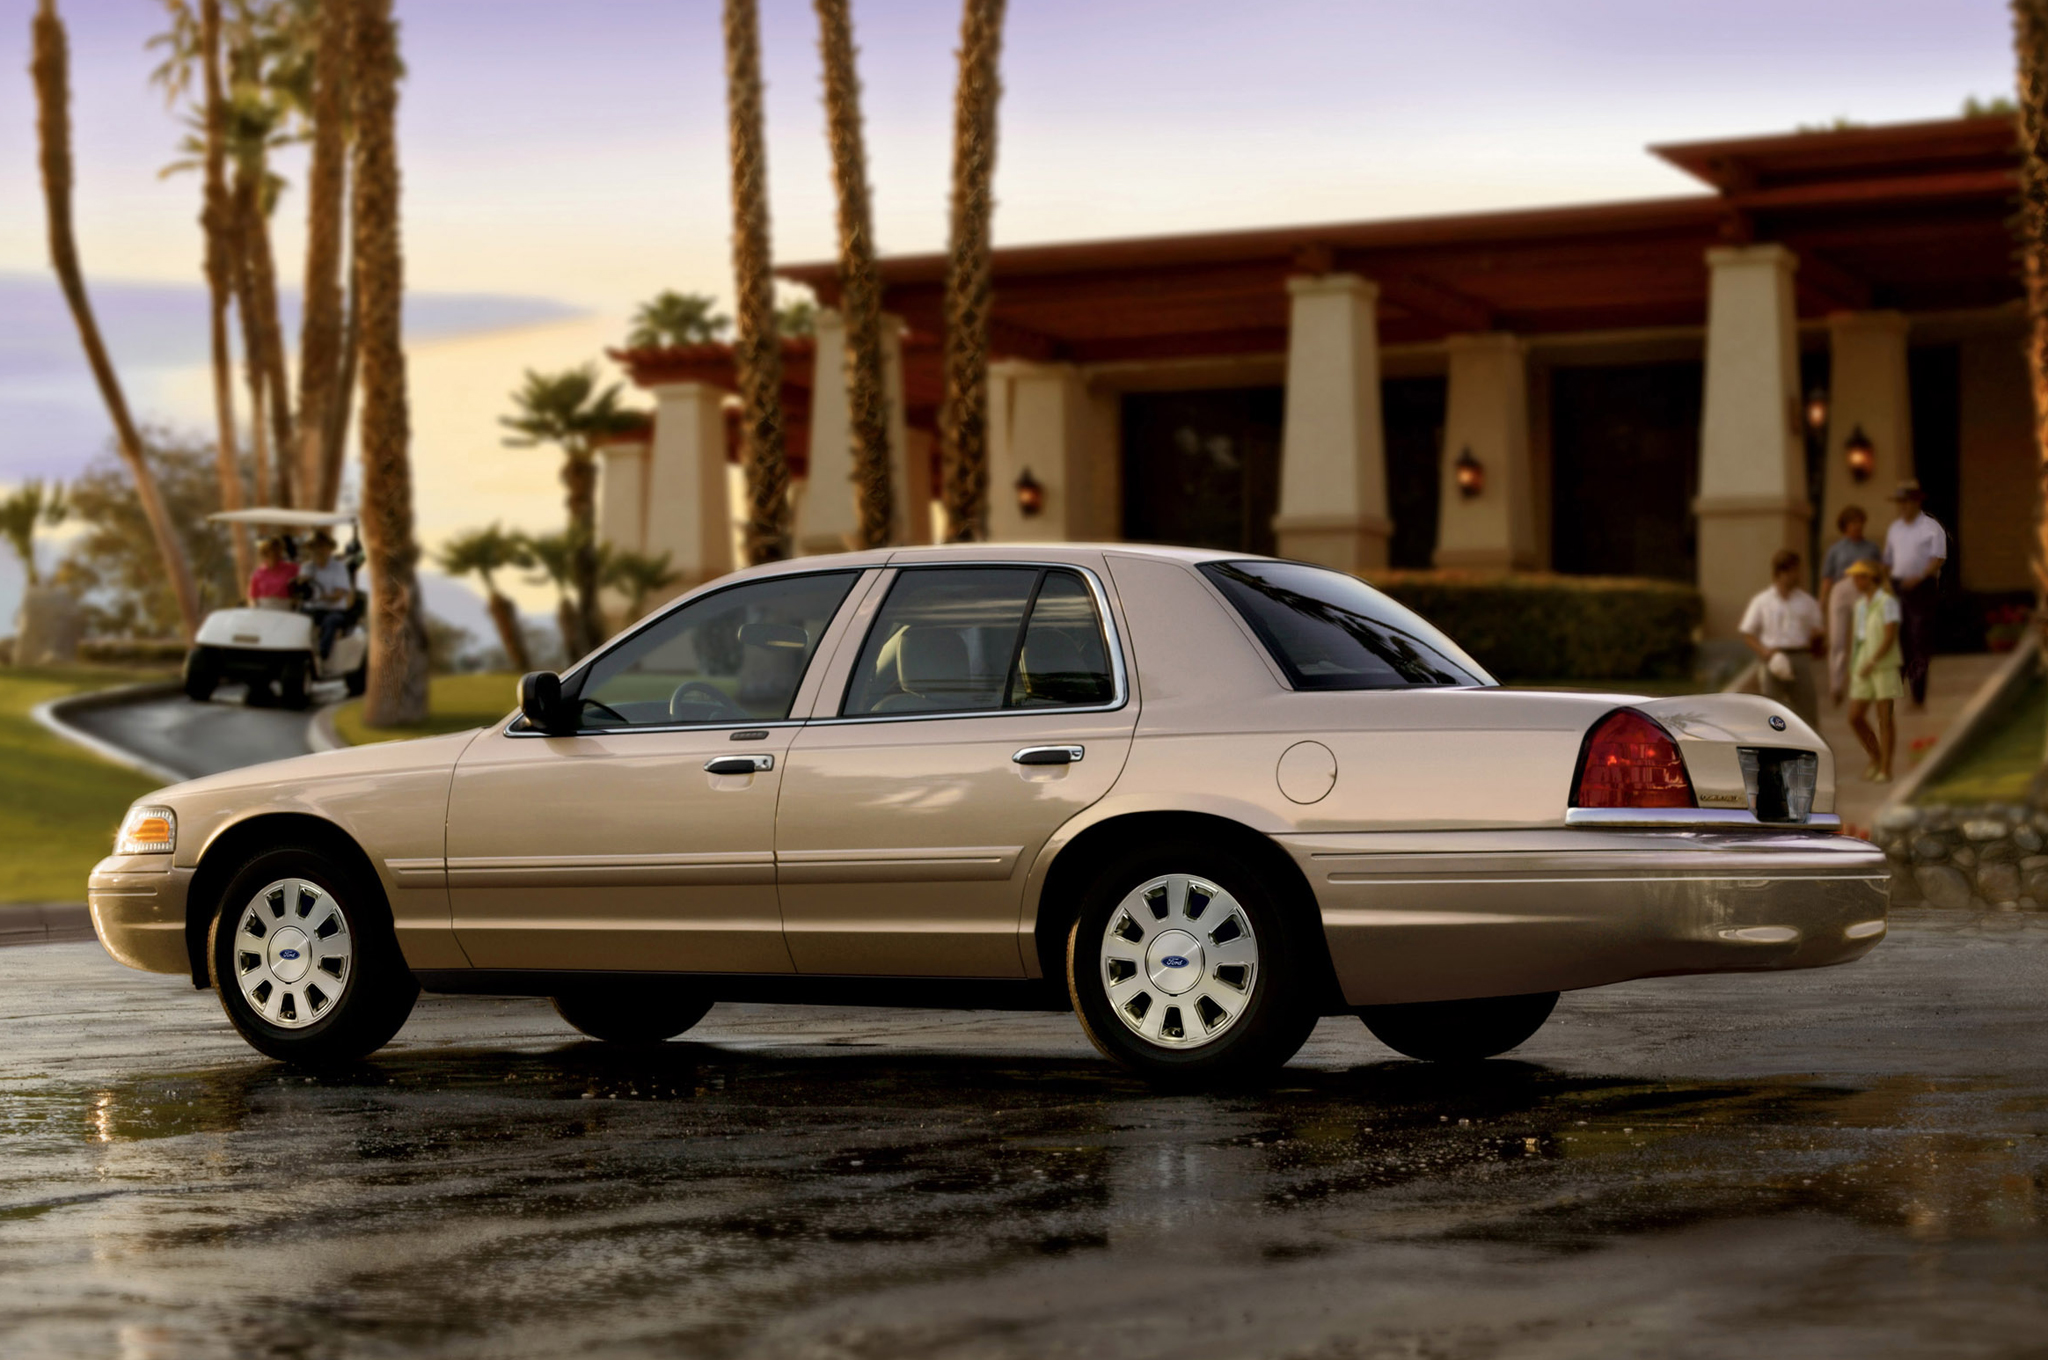 2006 Ford Crown Victoria #5